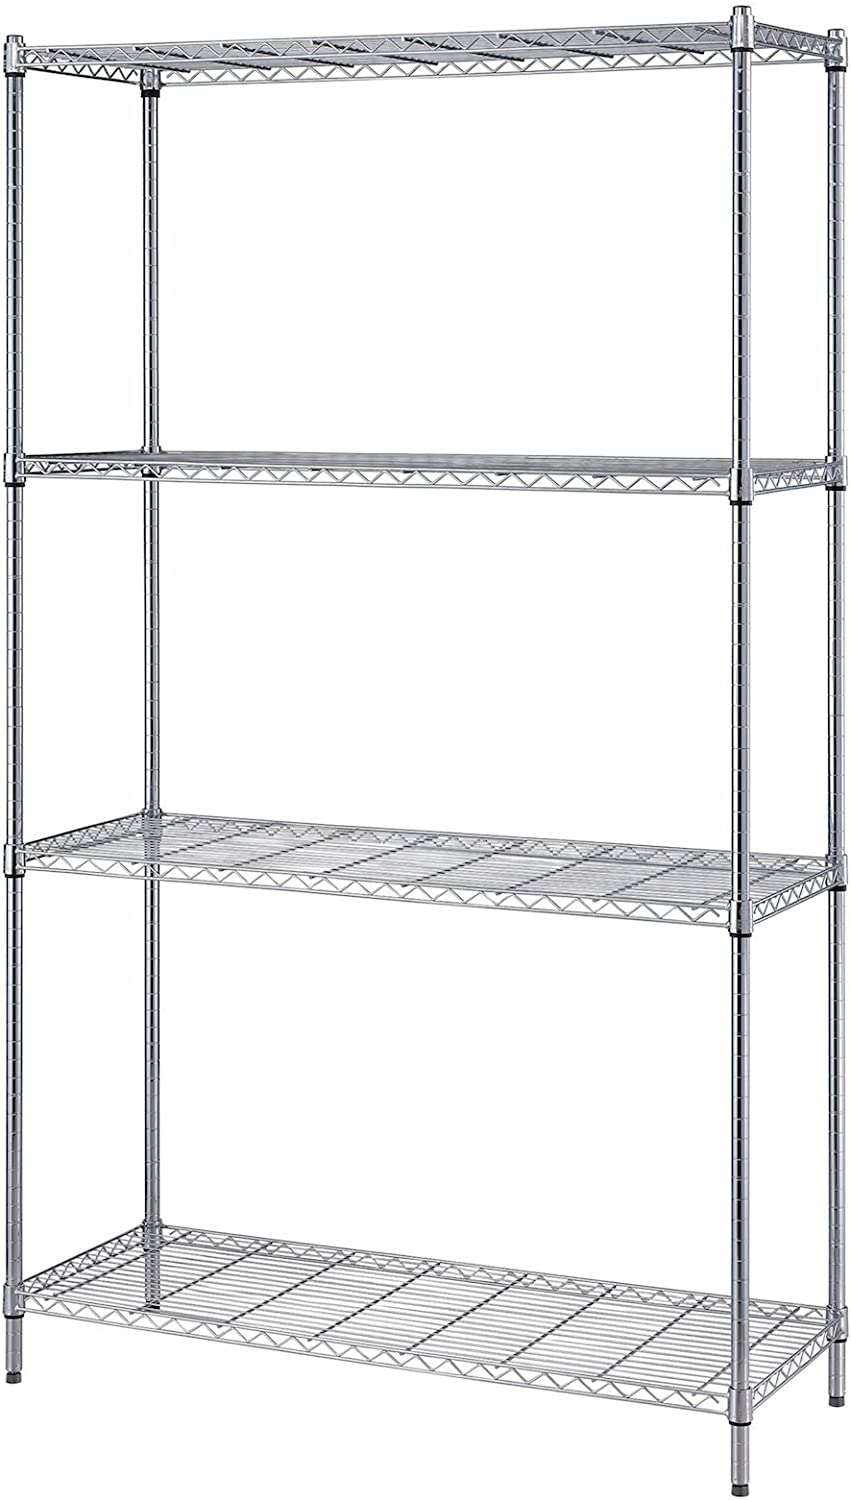 Quantum Storage Systems RWR72-1842LD 4-Tier Wire Shelving Unit, Chrome Finish, 300 lb. Per Shelf Capacity, 72  Height x 42  Width x 18  Depth